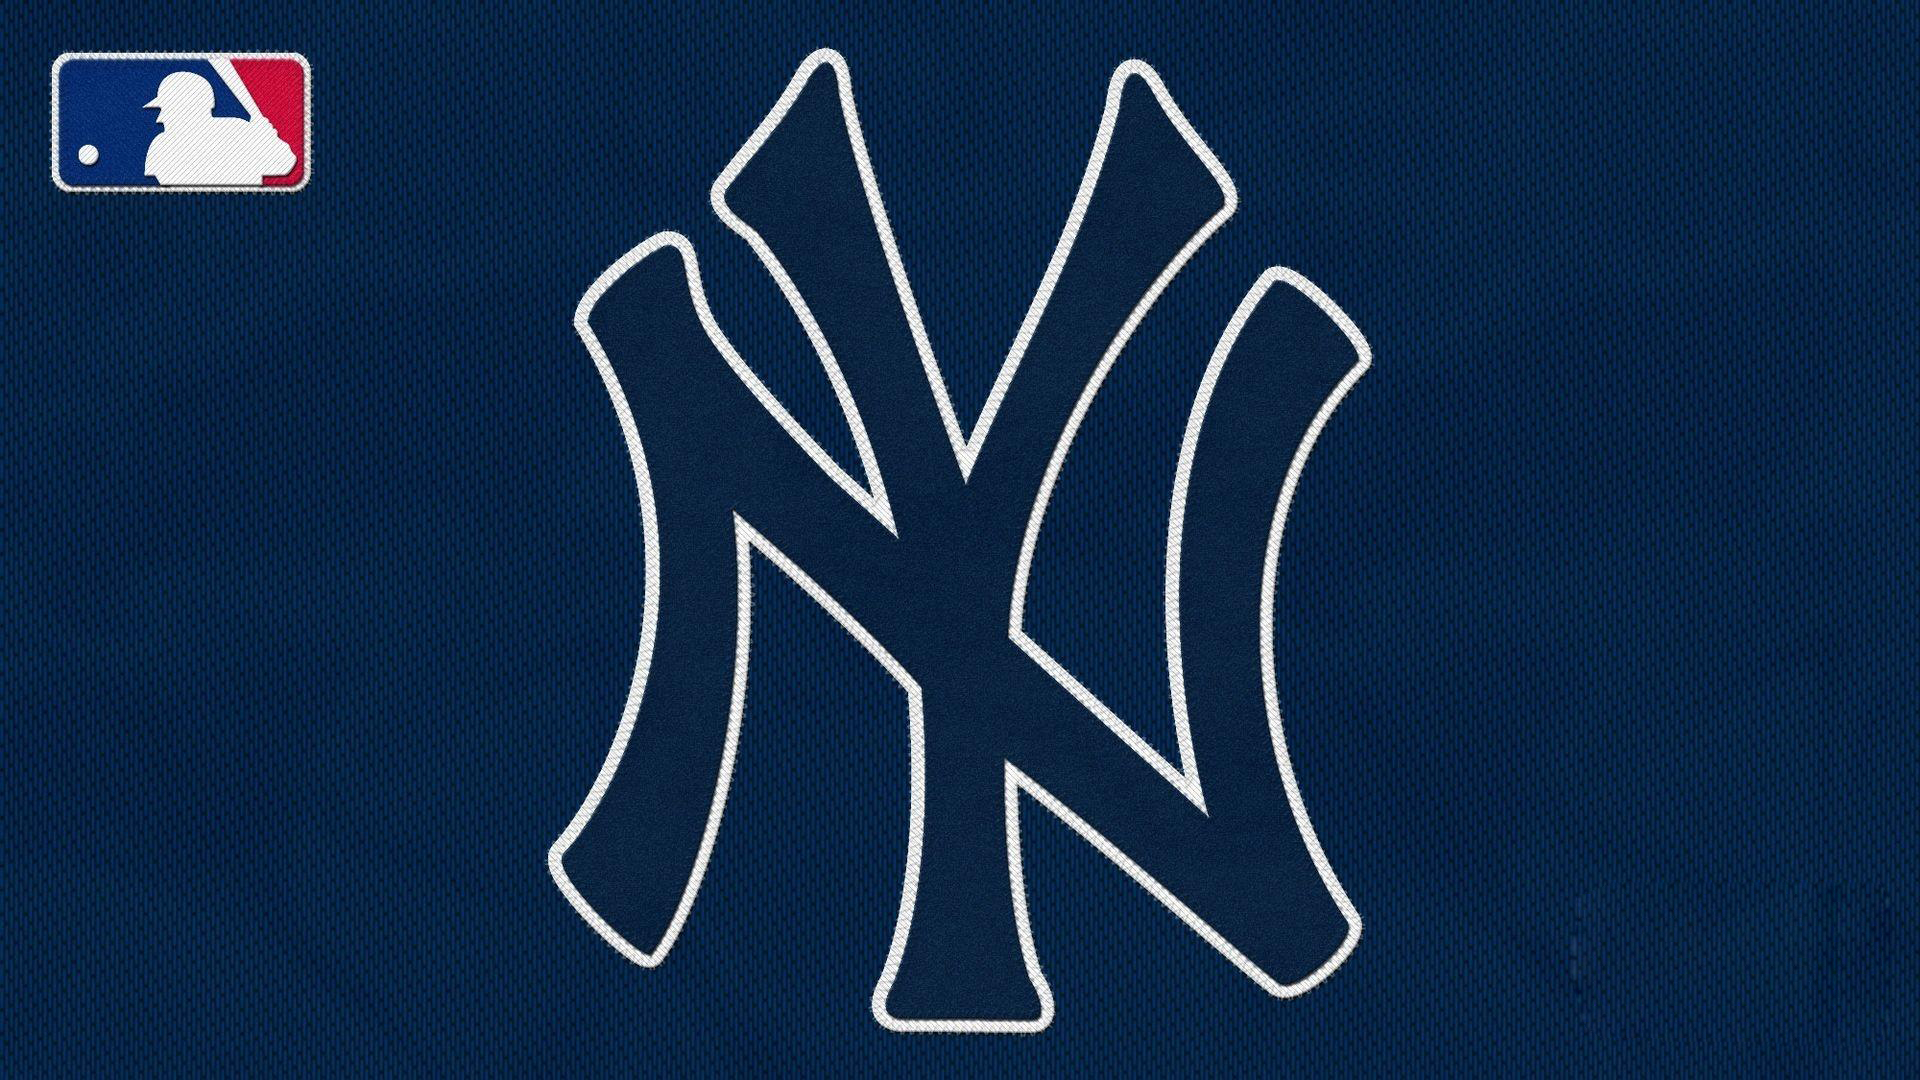 New York Yankees Wallpapers 26 Images Dodowallpaper